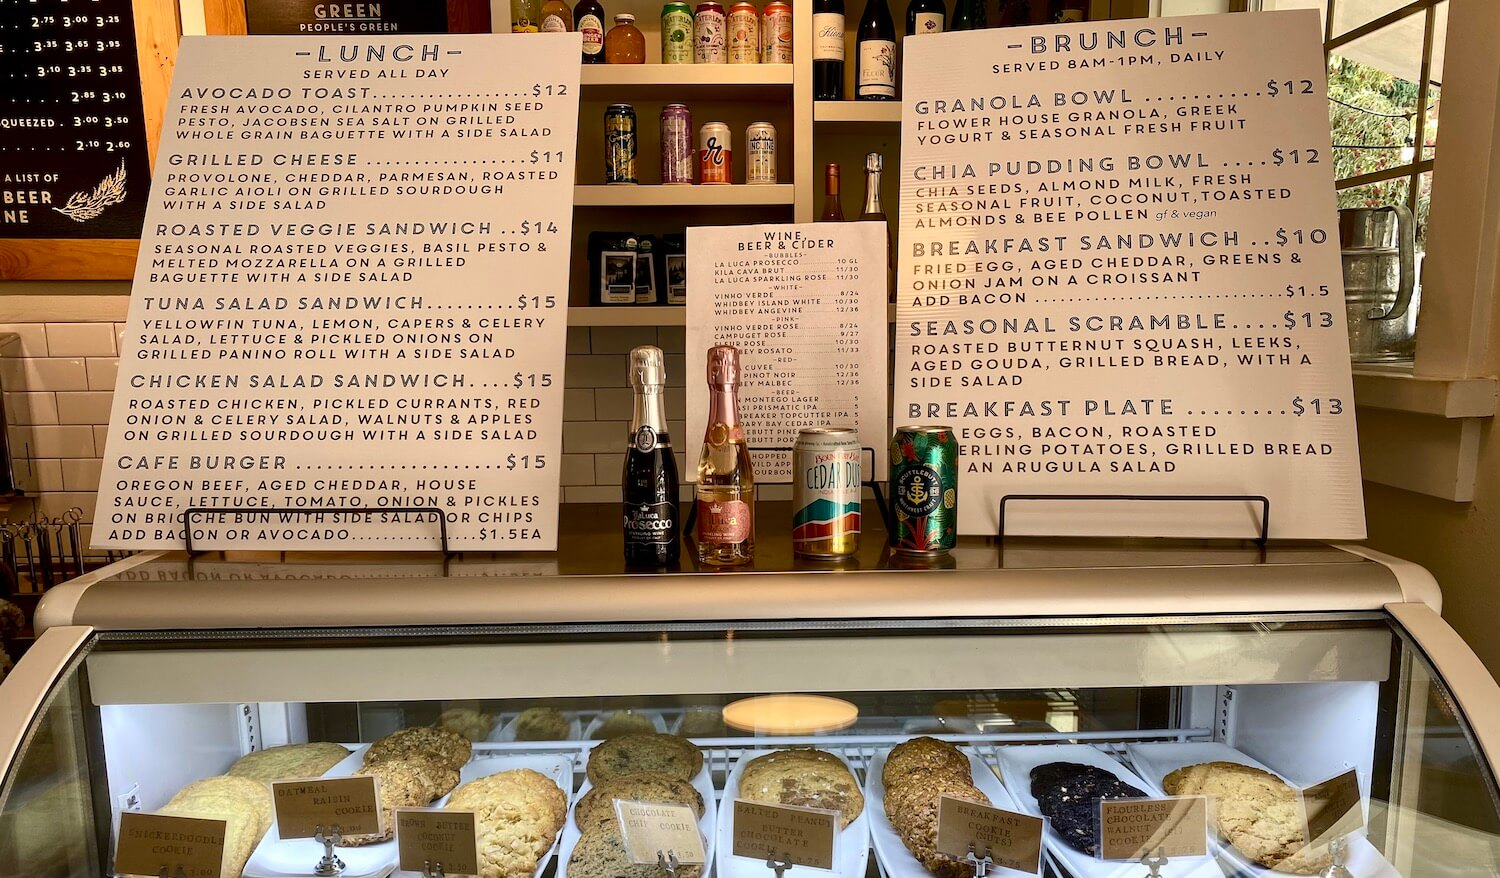 Menus are stacked up on top of a display case with various cookies while the shelves in the back show different beverages available for purchase at this cafe on Whidbey Island.